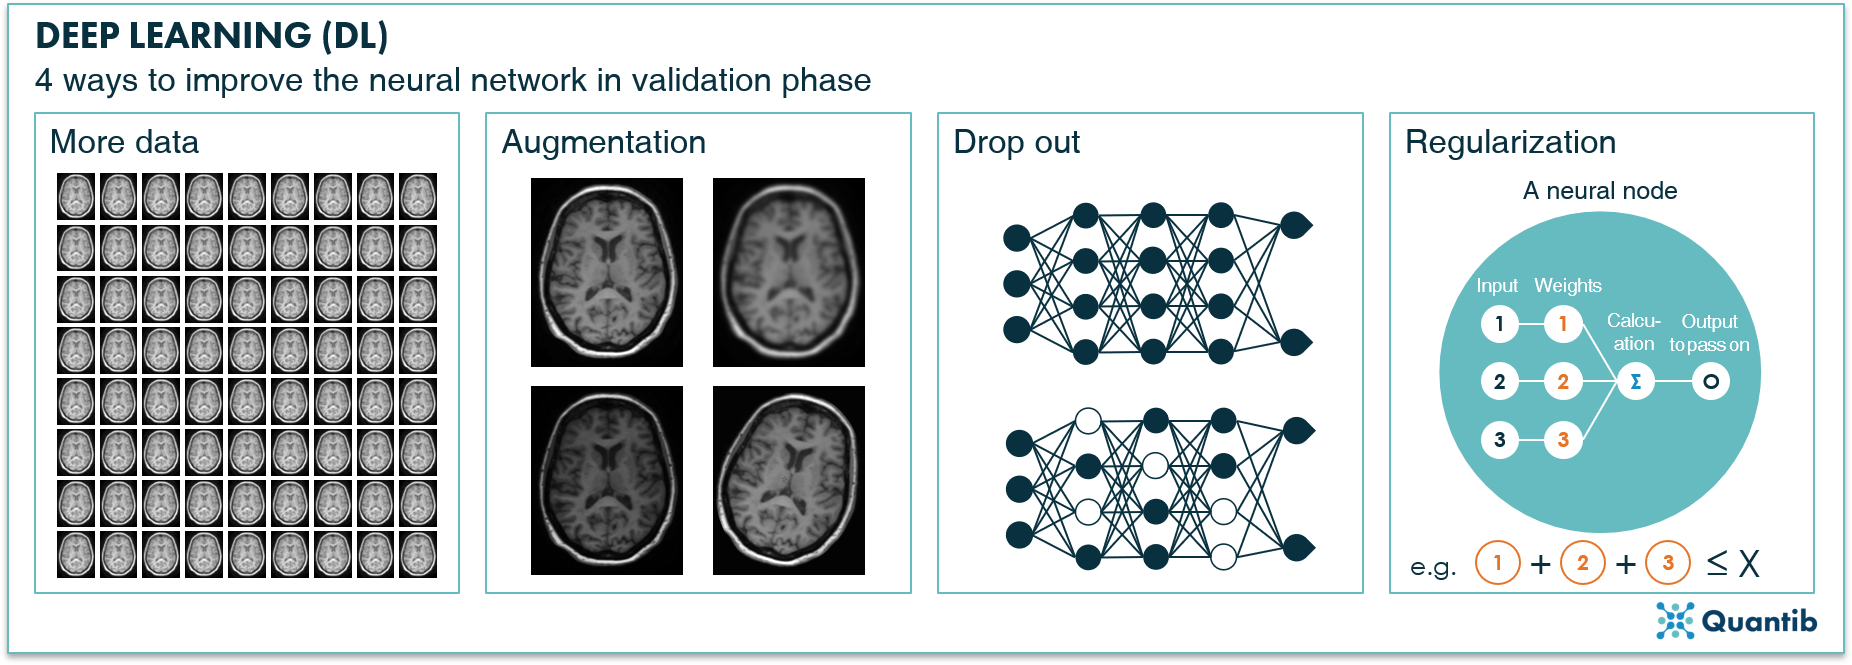 schematic figure illustrating deep learning in radiology explaining different techniques to improve a neural network